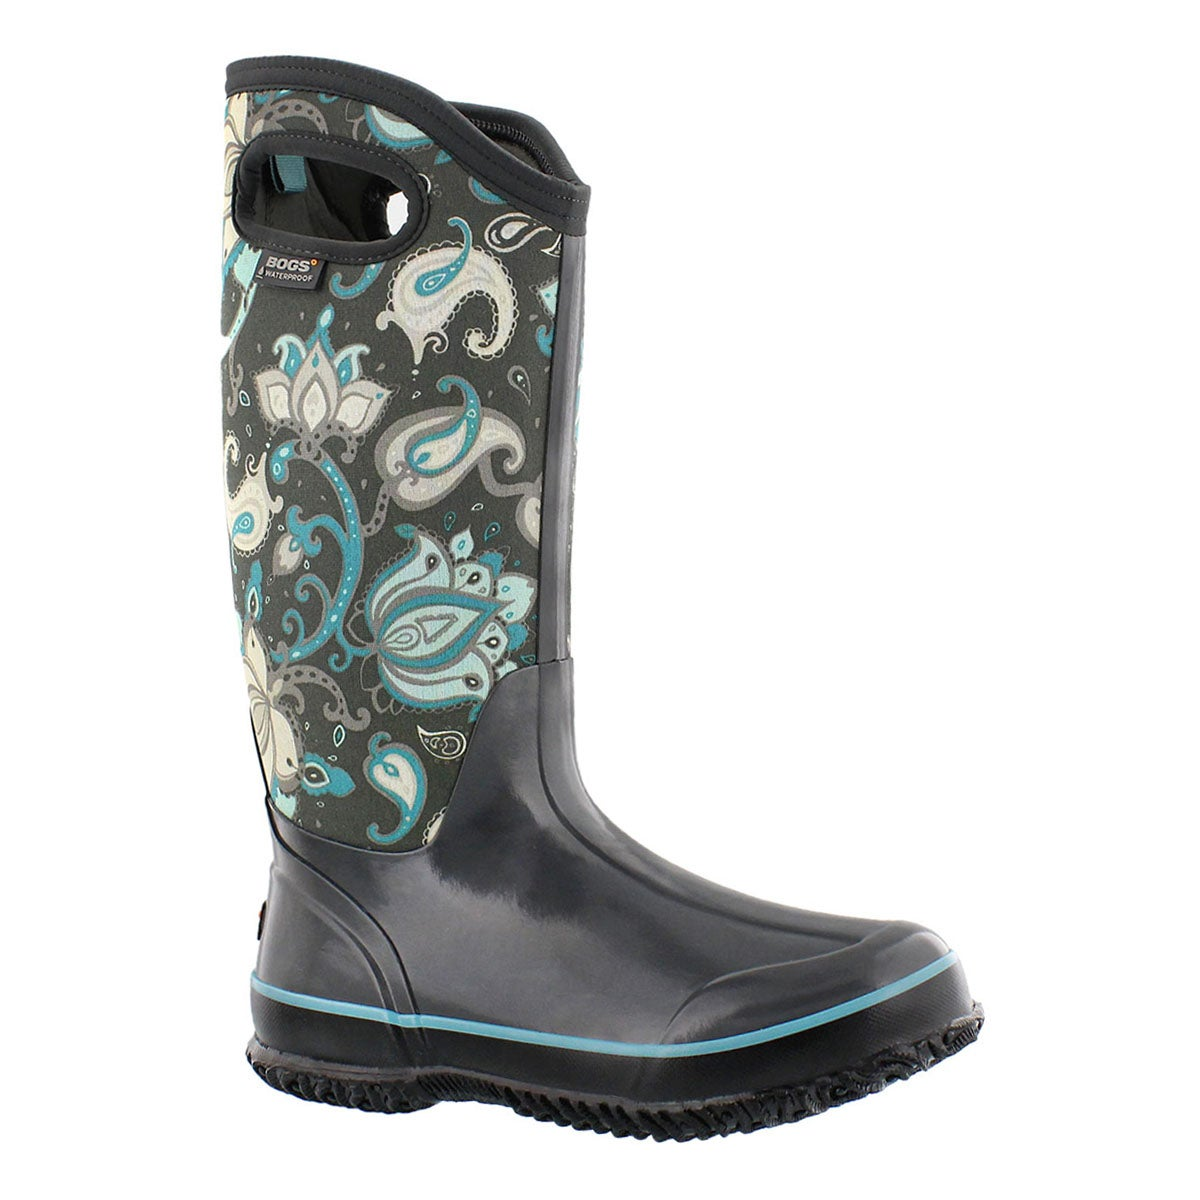 Lds ClassicPaisleyFloralTall gry wp boot